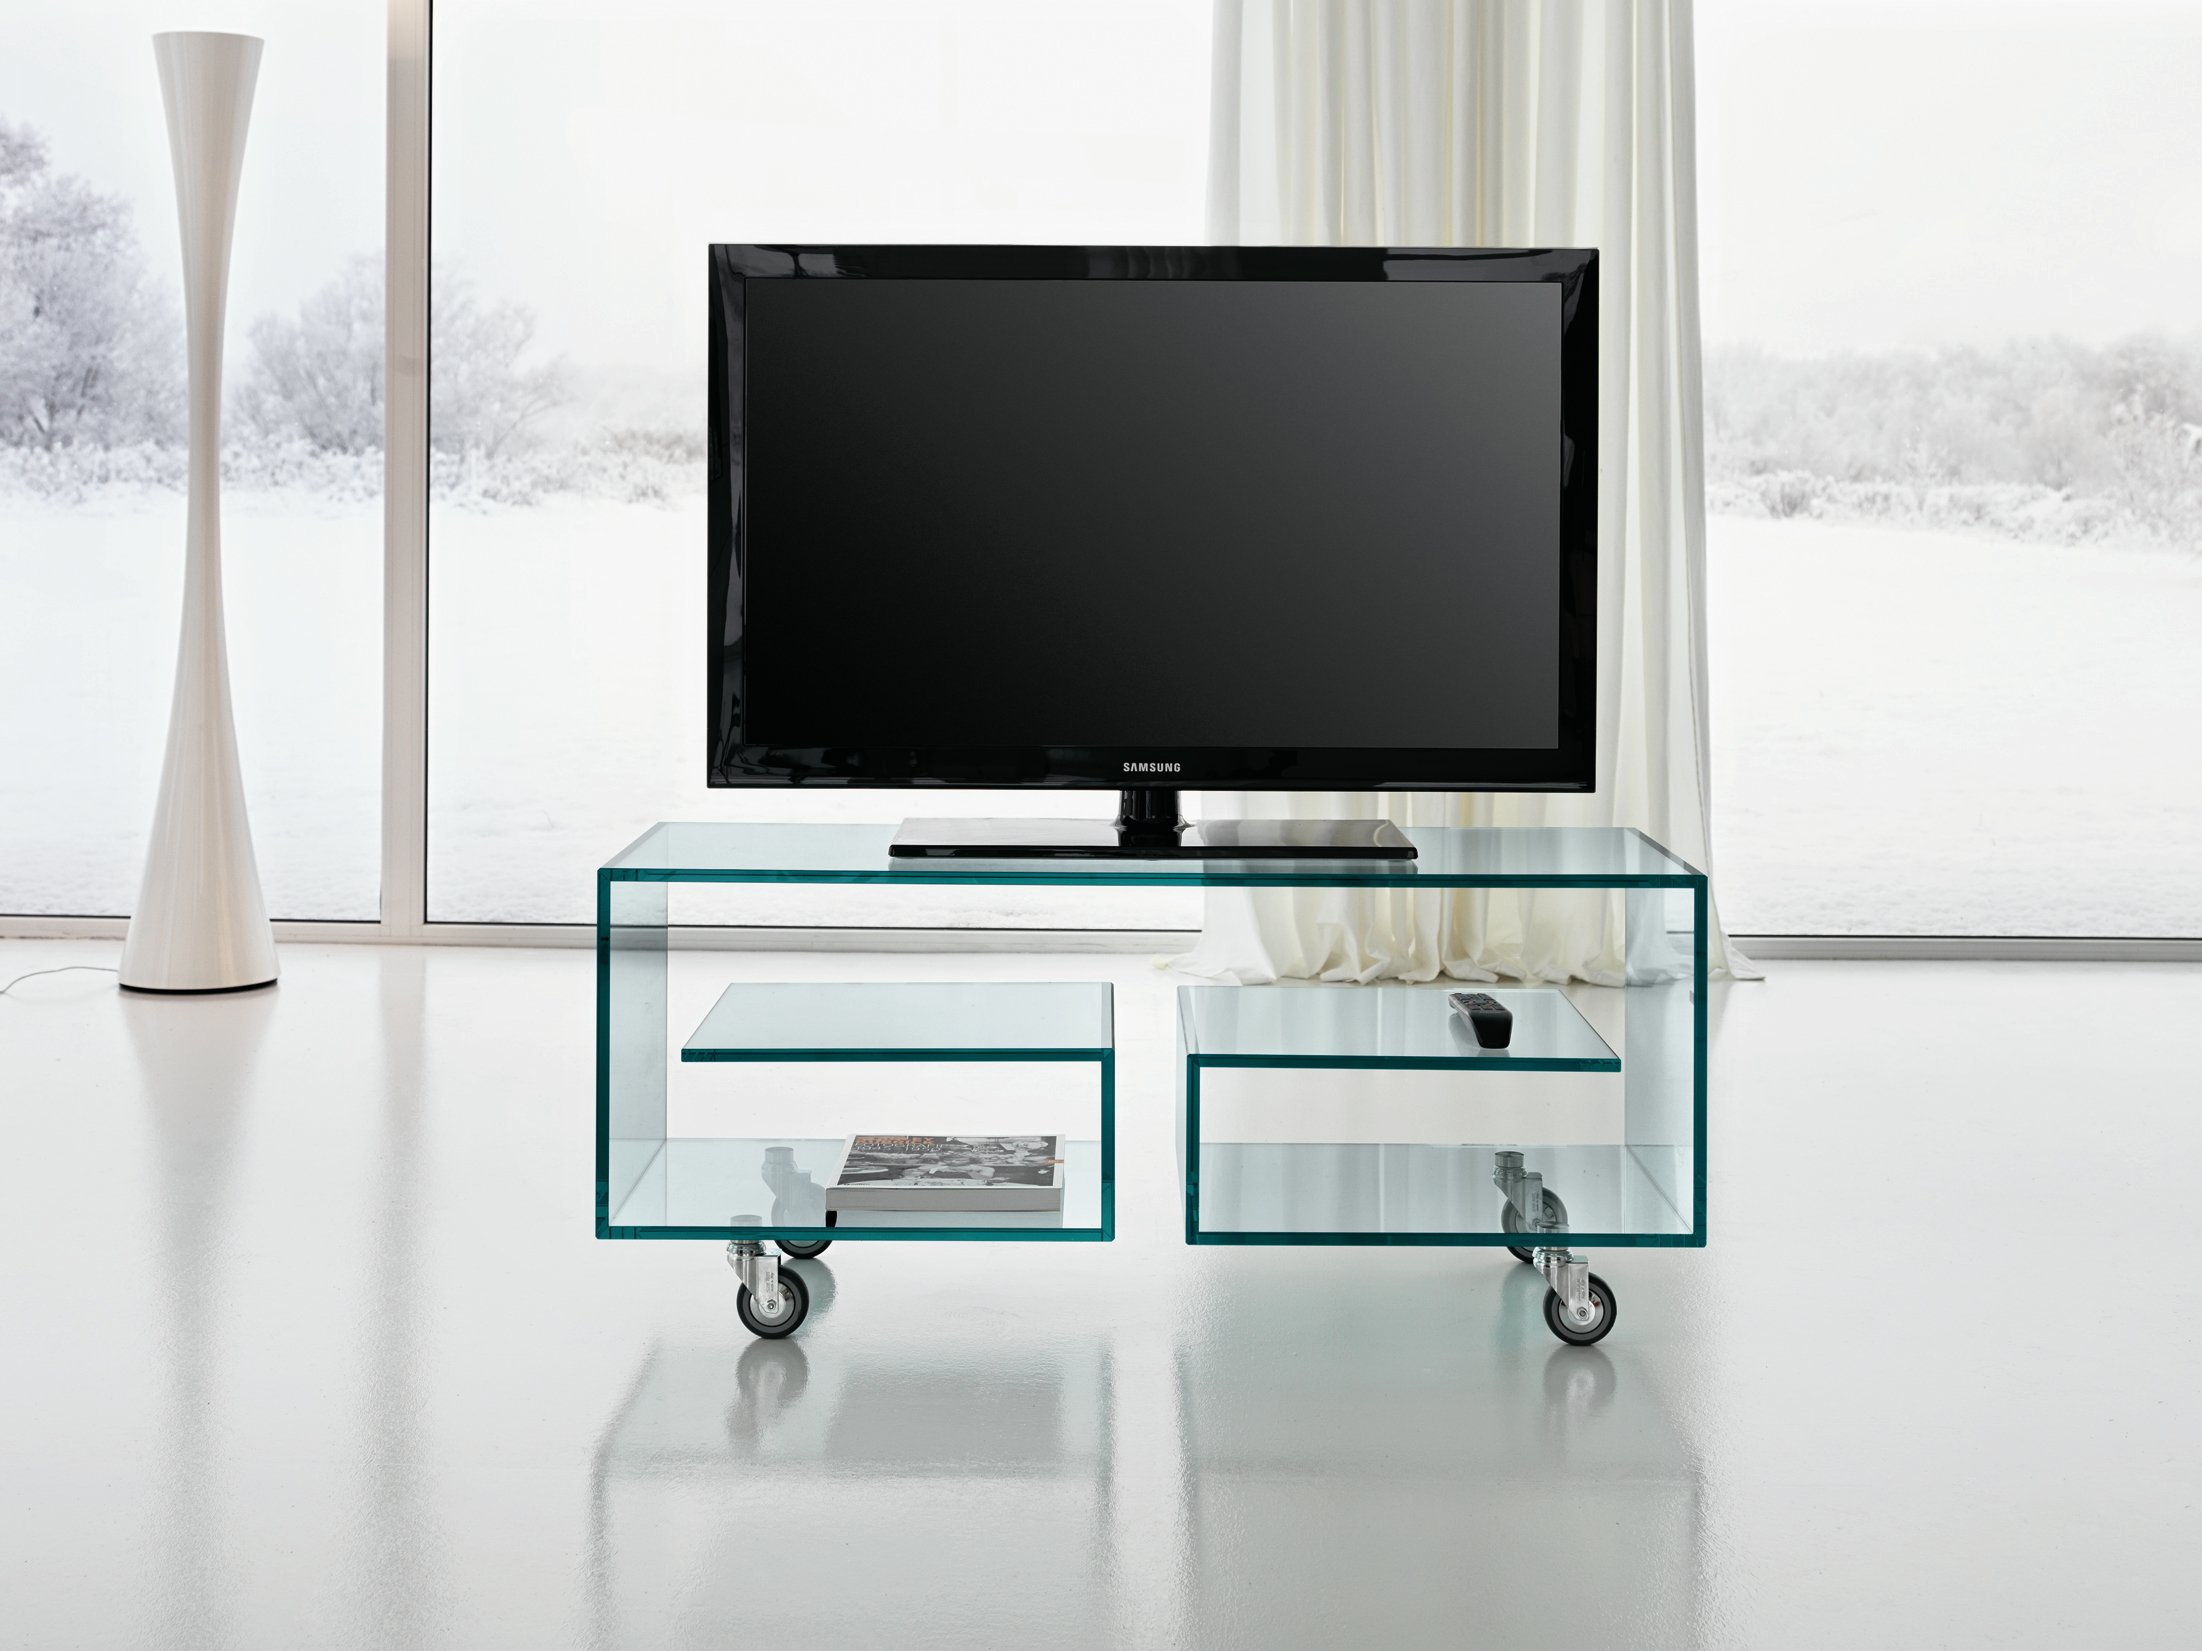 Meuble tv en verre roulettes fl 1 by t d tonelli for Meuble tv en verre design